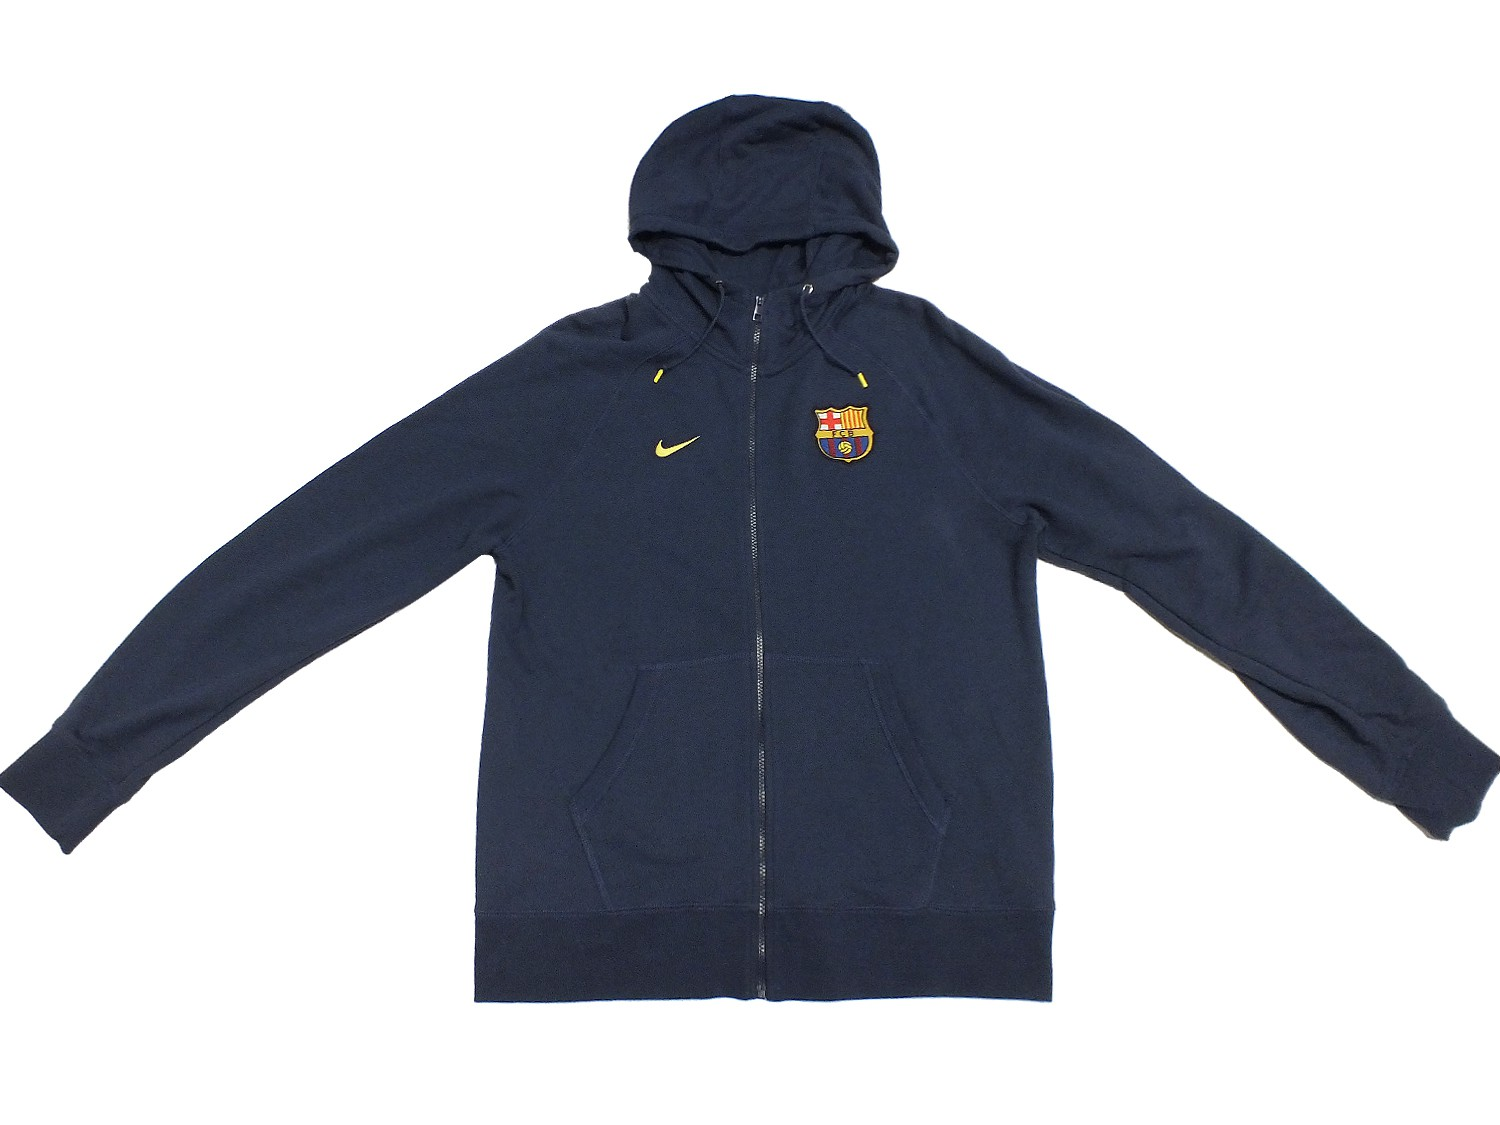 nike fcb barcelona hoody kapuzen jacke 546794 blau 410. Black Bedroom Furniture Sets. Home Design Ideas